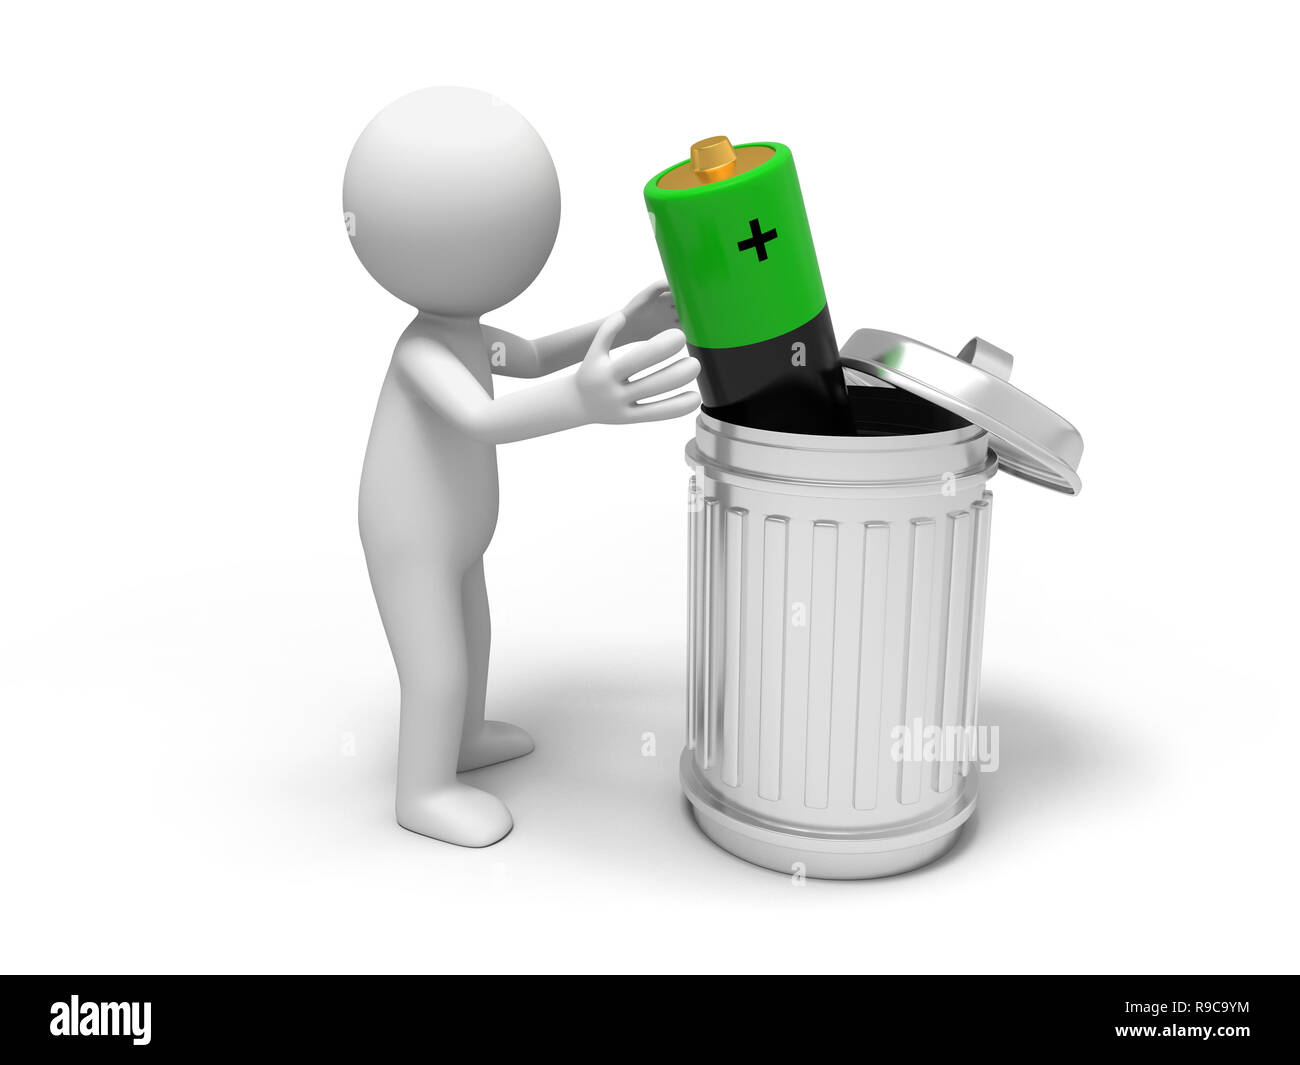 Battery and trash can - Stock Image